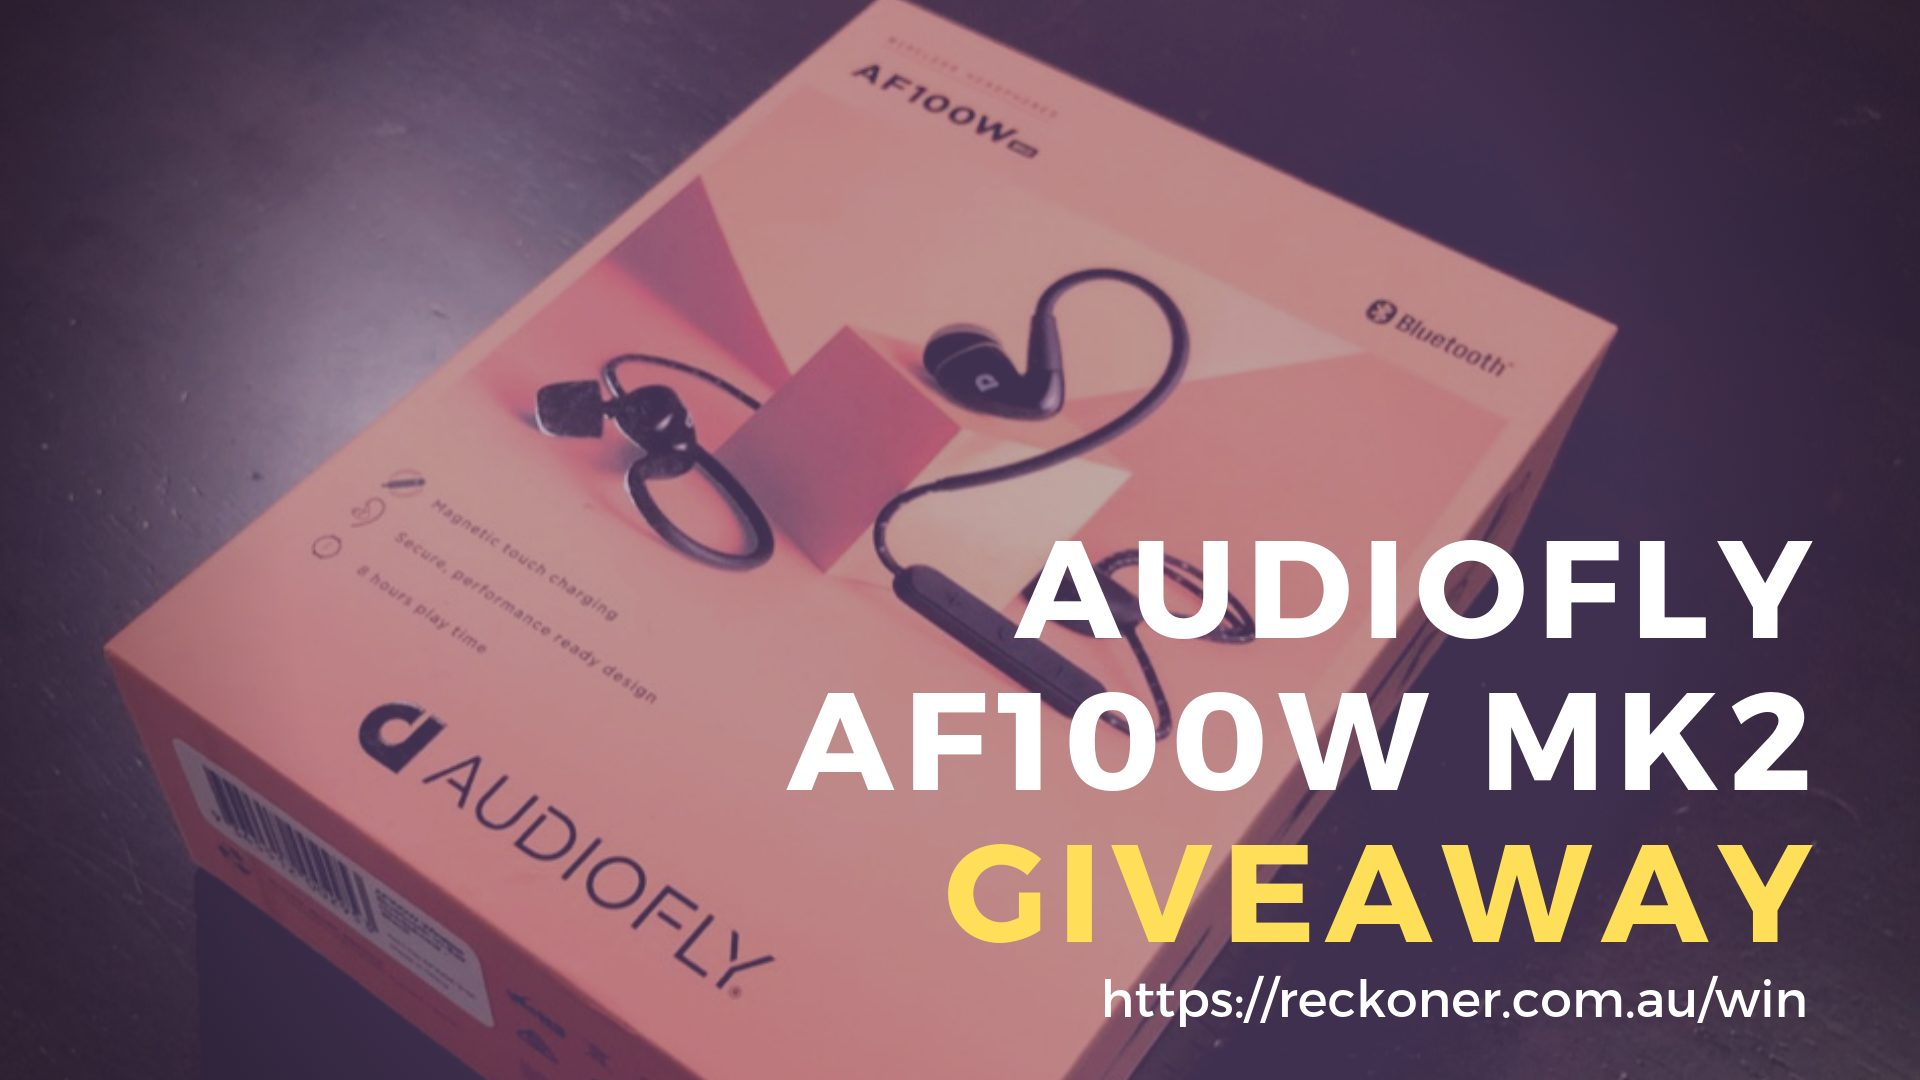 ENDED: Win a pair of Audiofly AF100W Mk2 headphones!